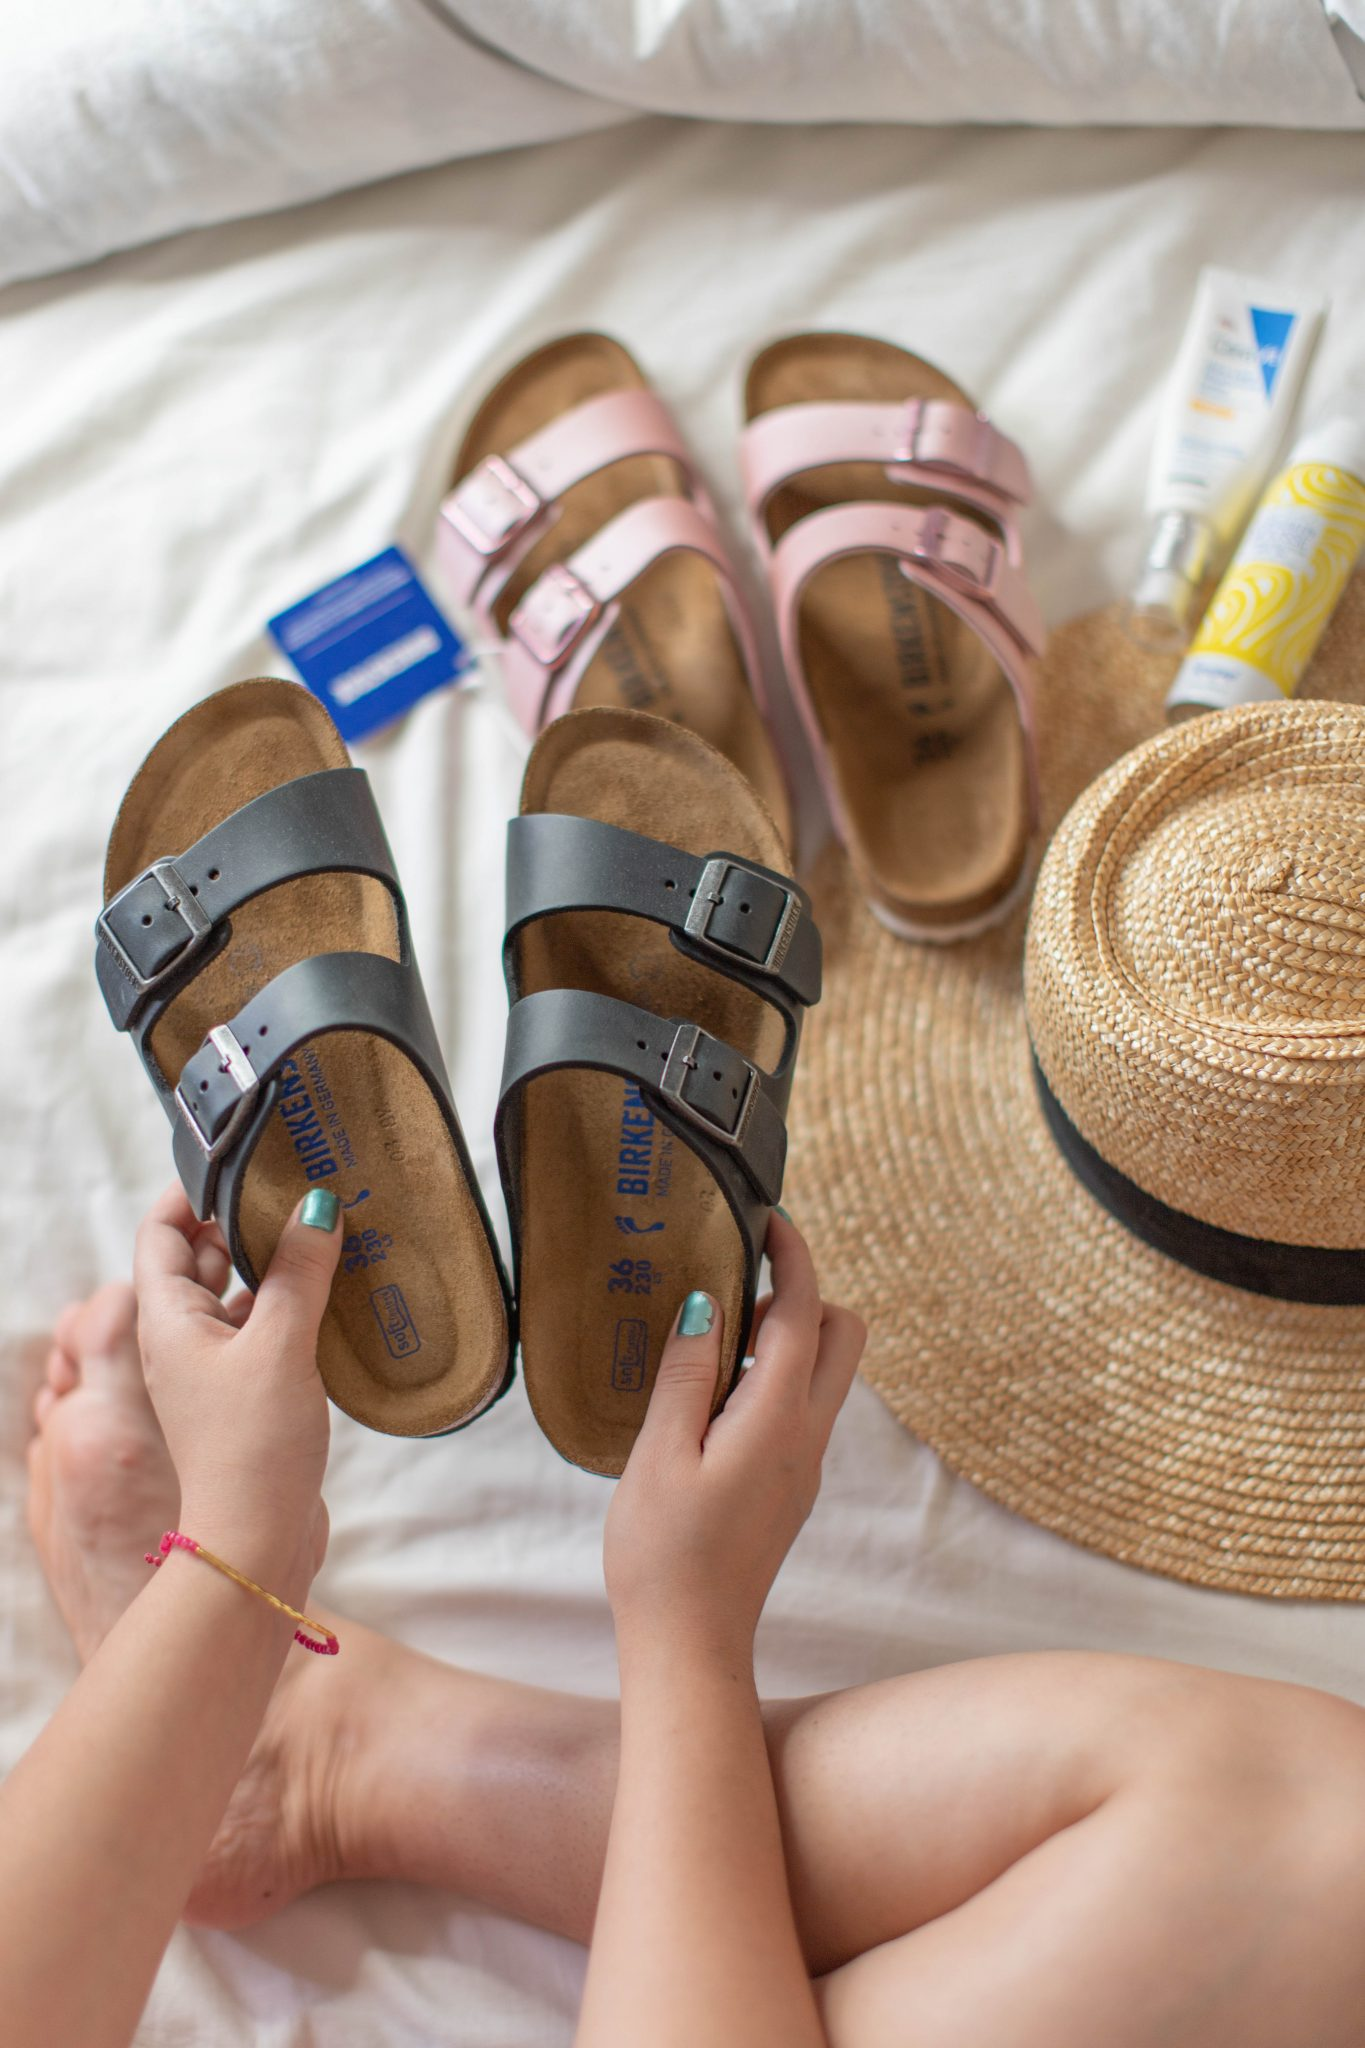 Recent Fashion and Beauty Finds by popular NYC life and style blog, Live Laugh Linda: image of Birkenstock sandals, Brixton hat, sunscreen